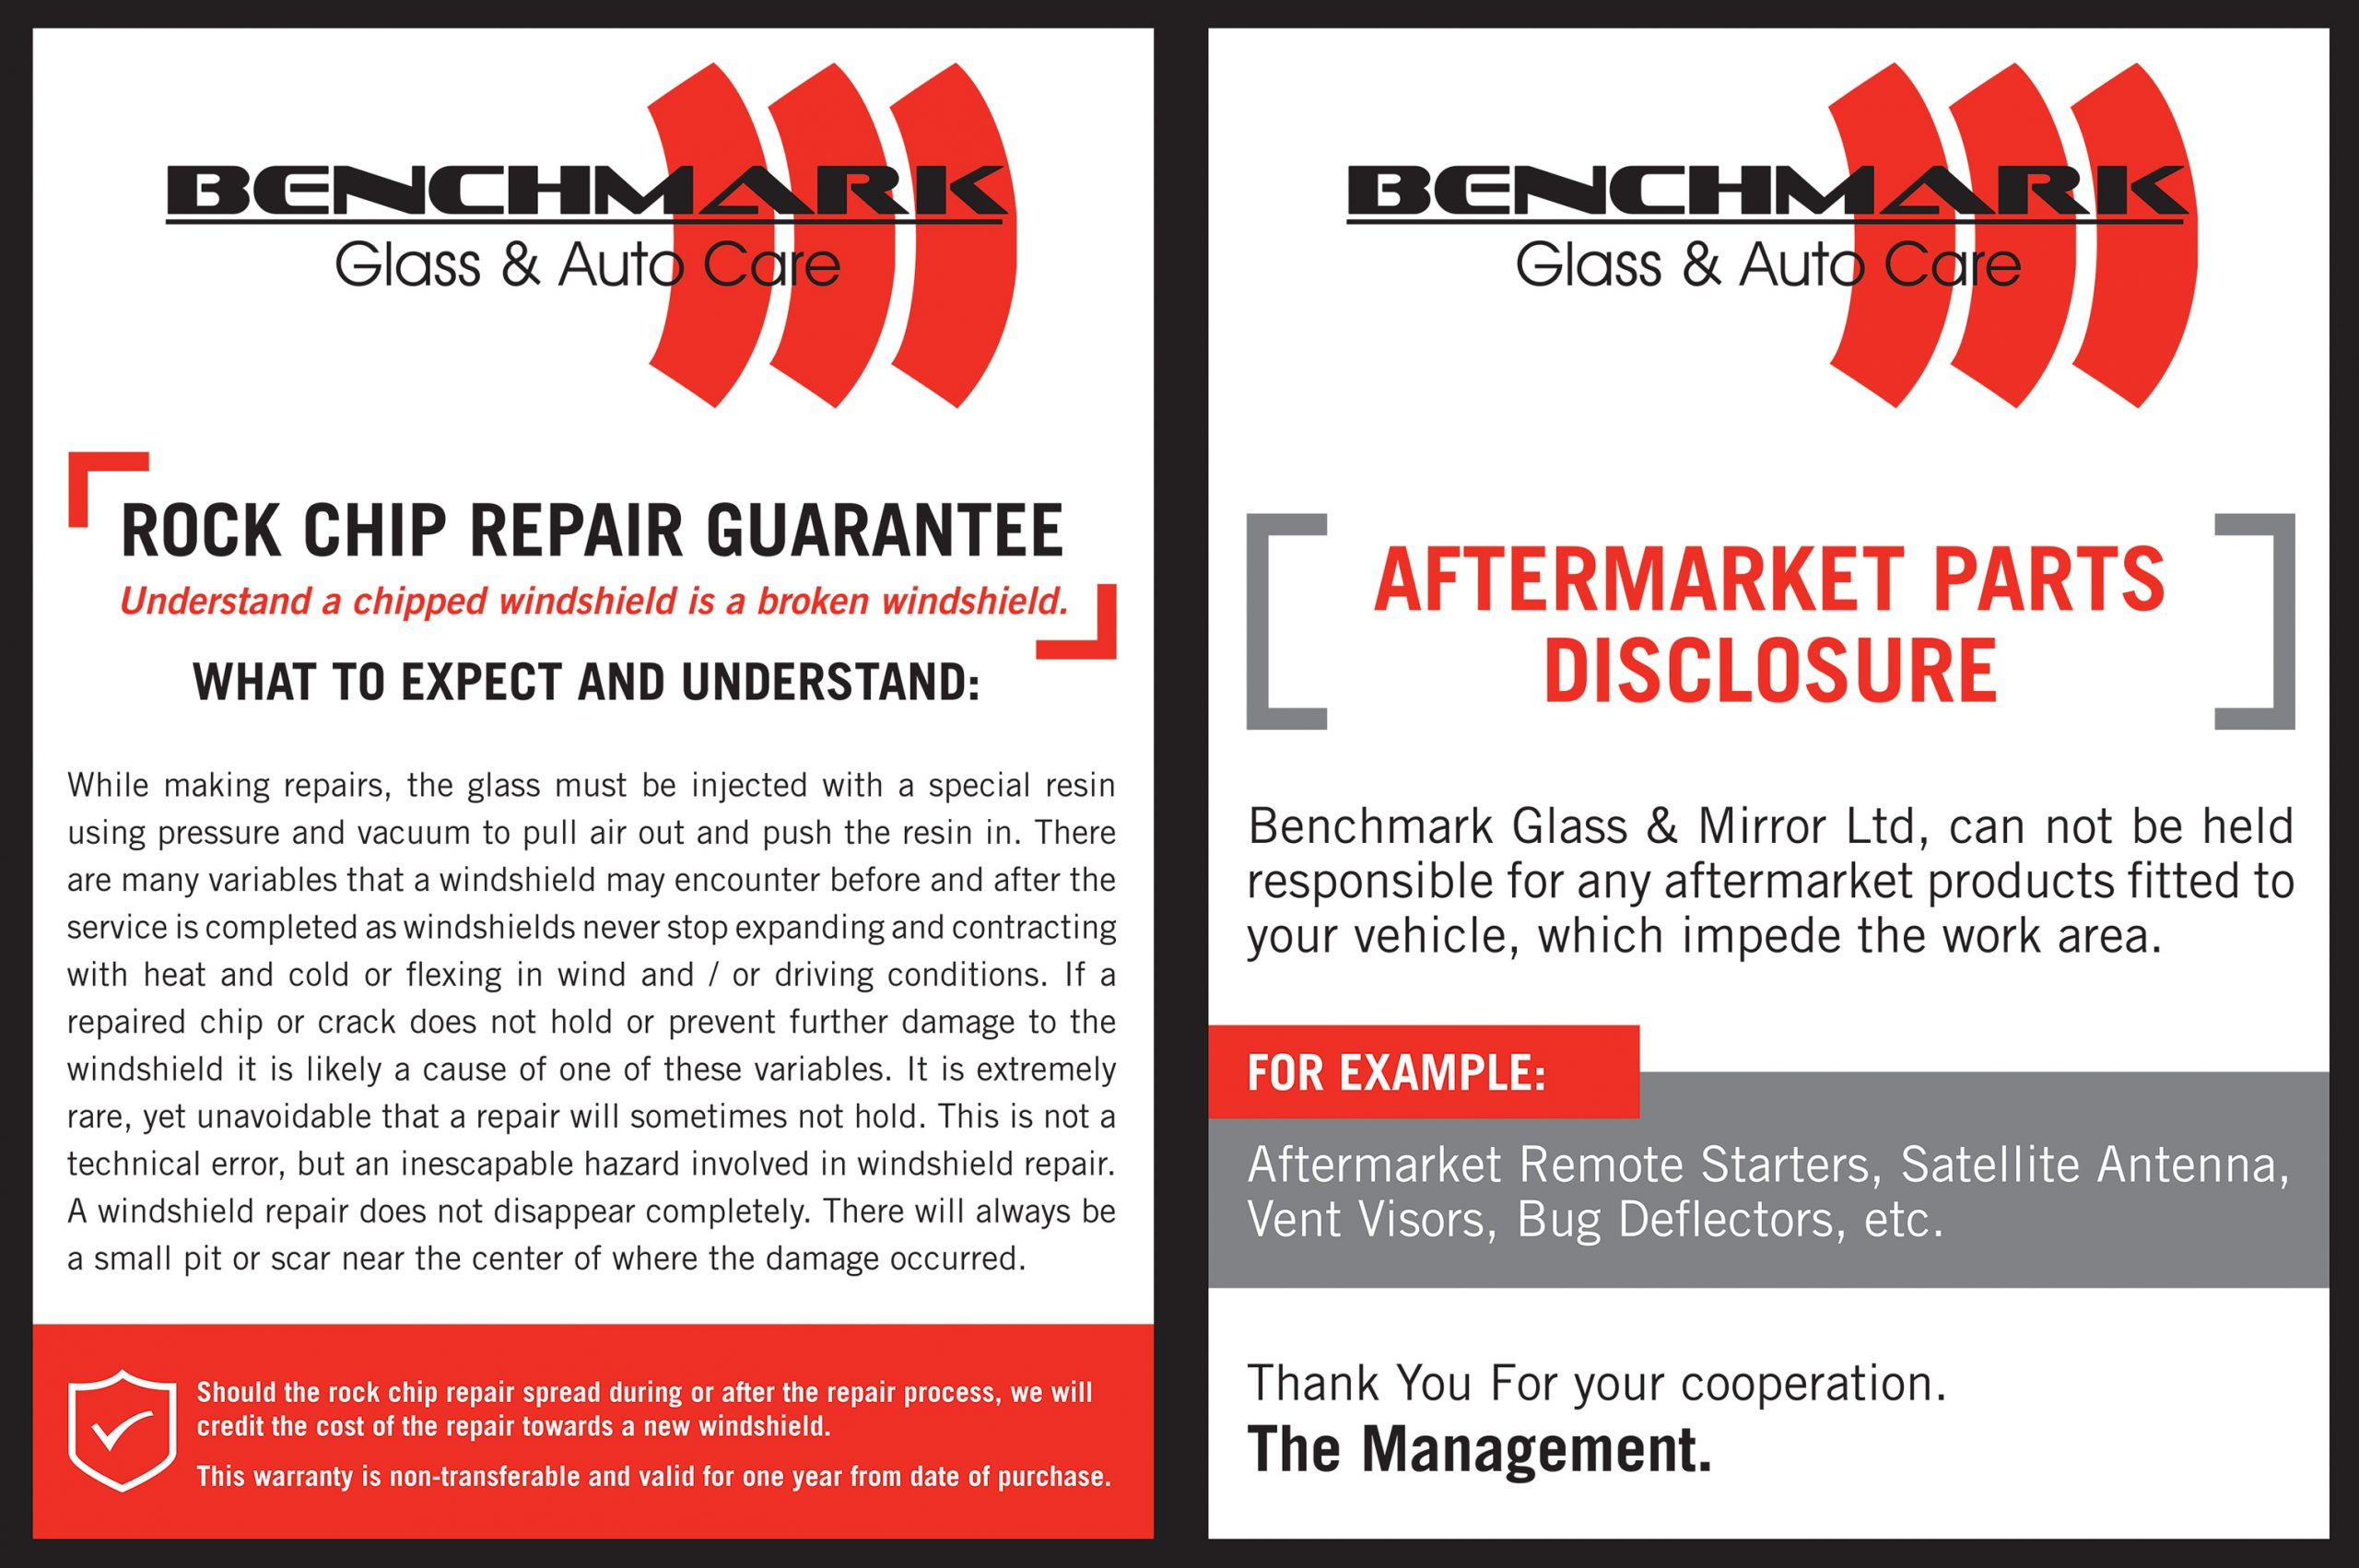 benchmark glass rock chip repair guarantee and aftermarket parts disclosure